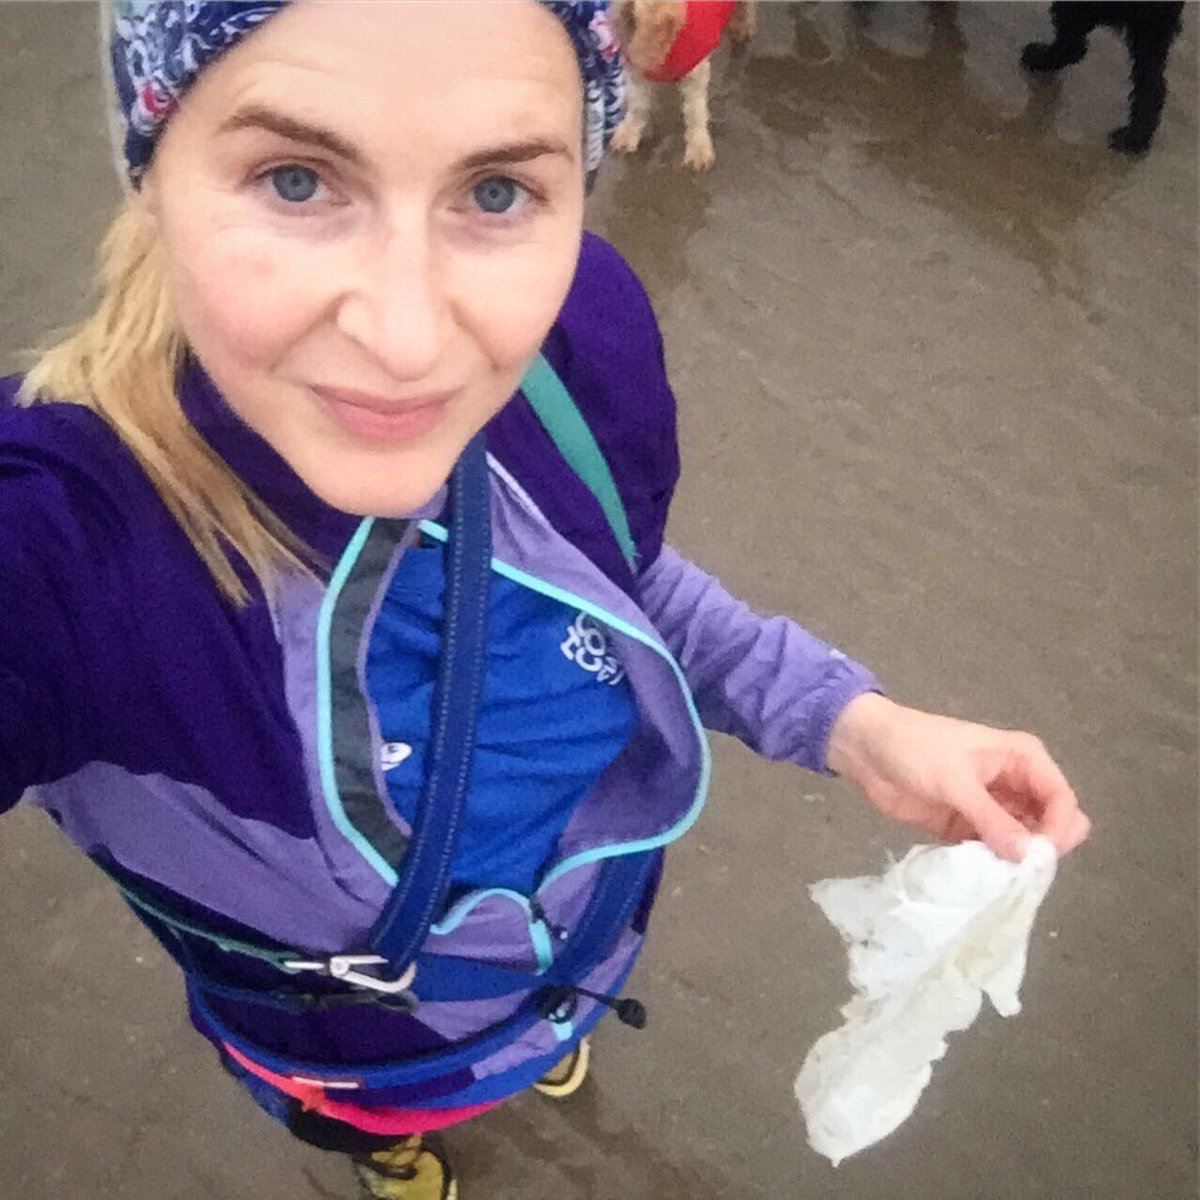 Just can't run past plastic on the beach. So, jogging became plogging!  #run #running #jogging #plogging #litter #take3forthesea #litterpicking #plasticpollution #plasticfreeoceans pic.twitter.com/mUnuaziMtA